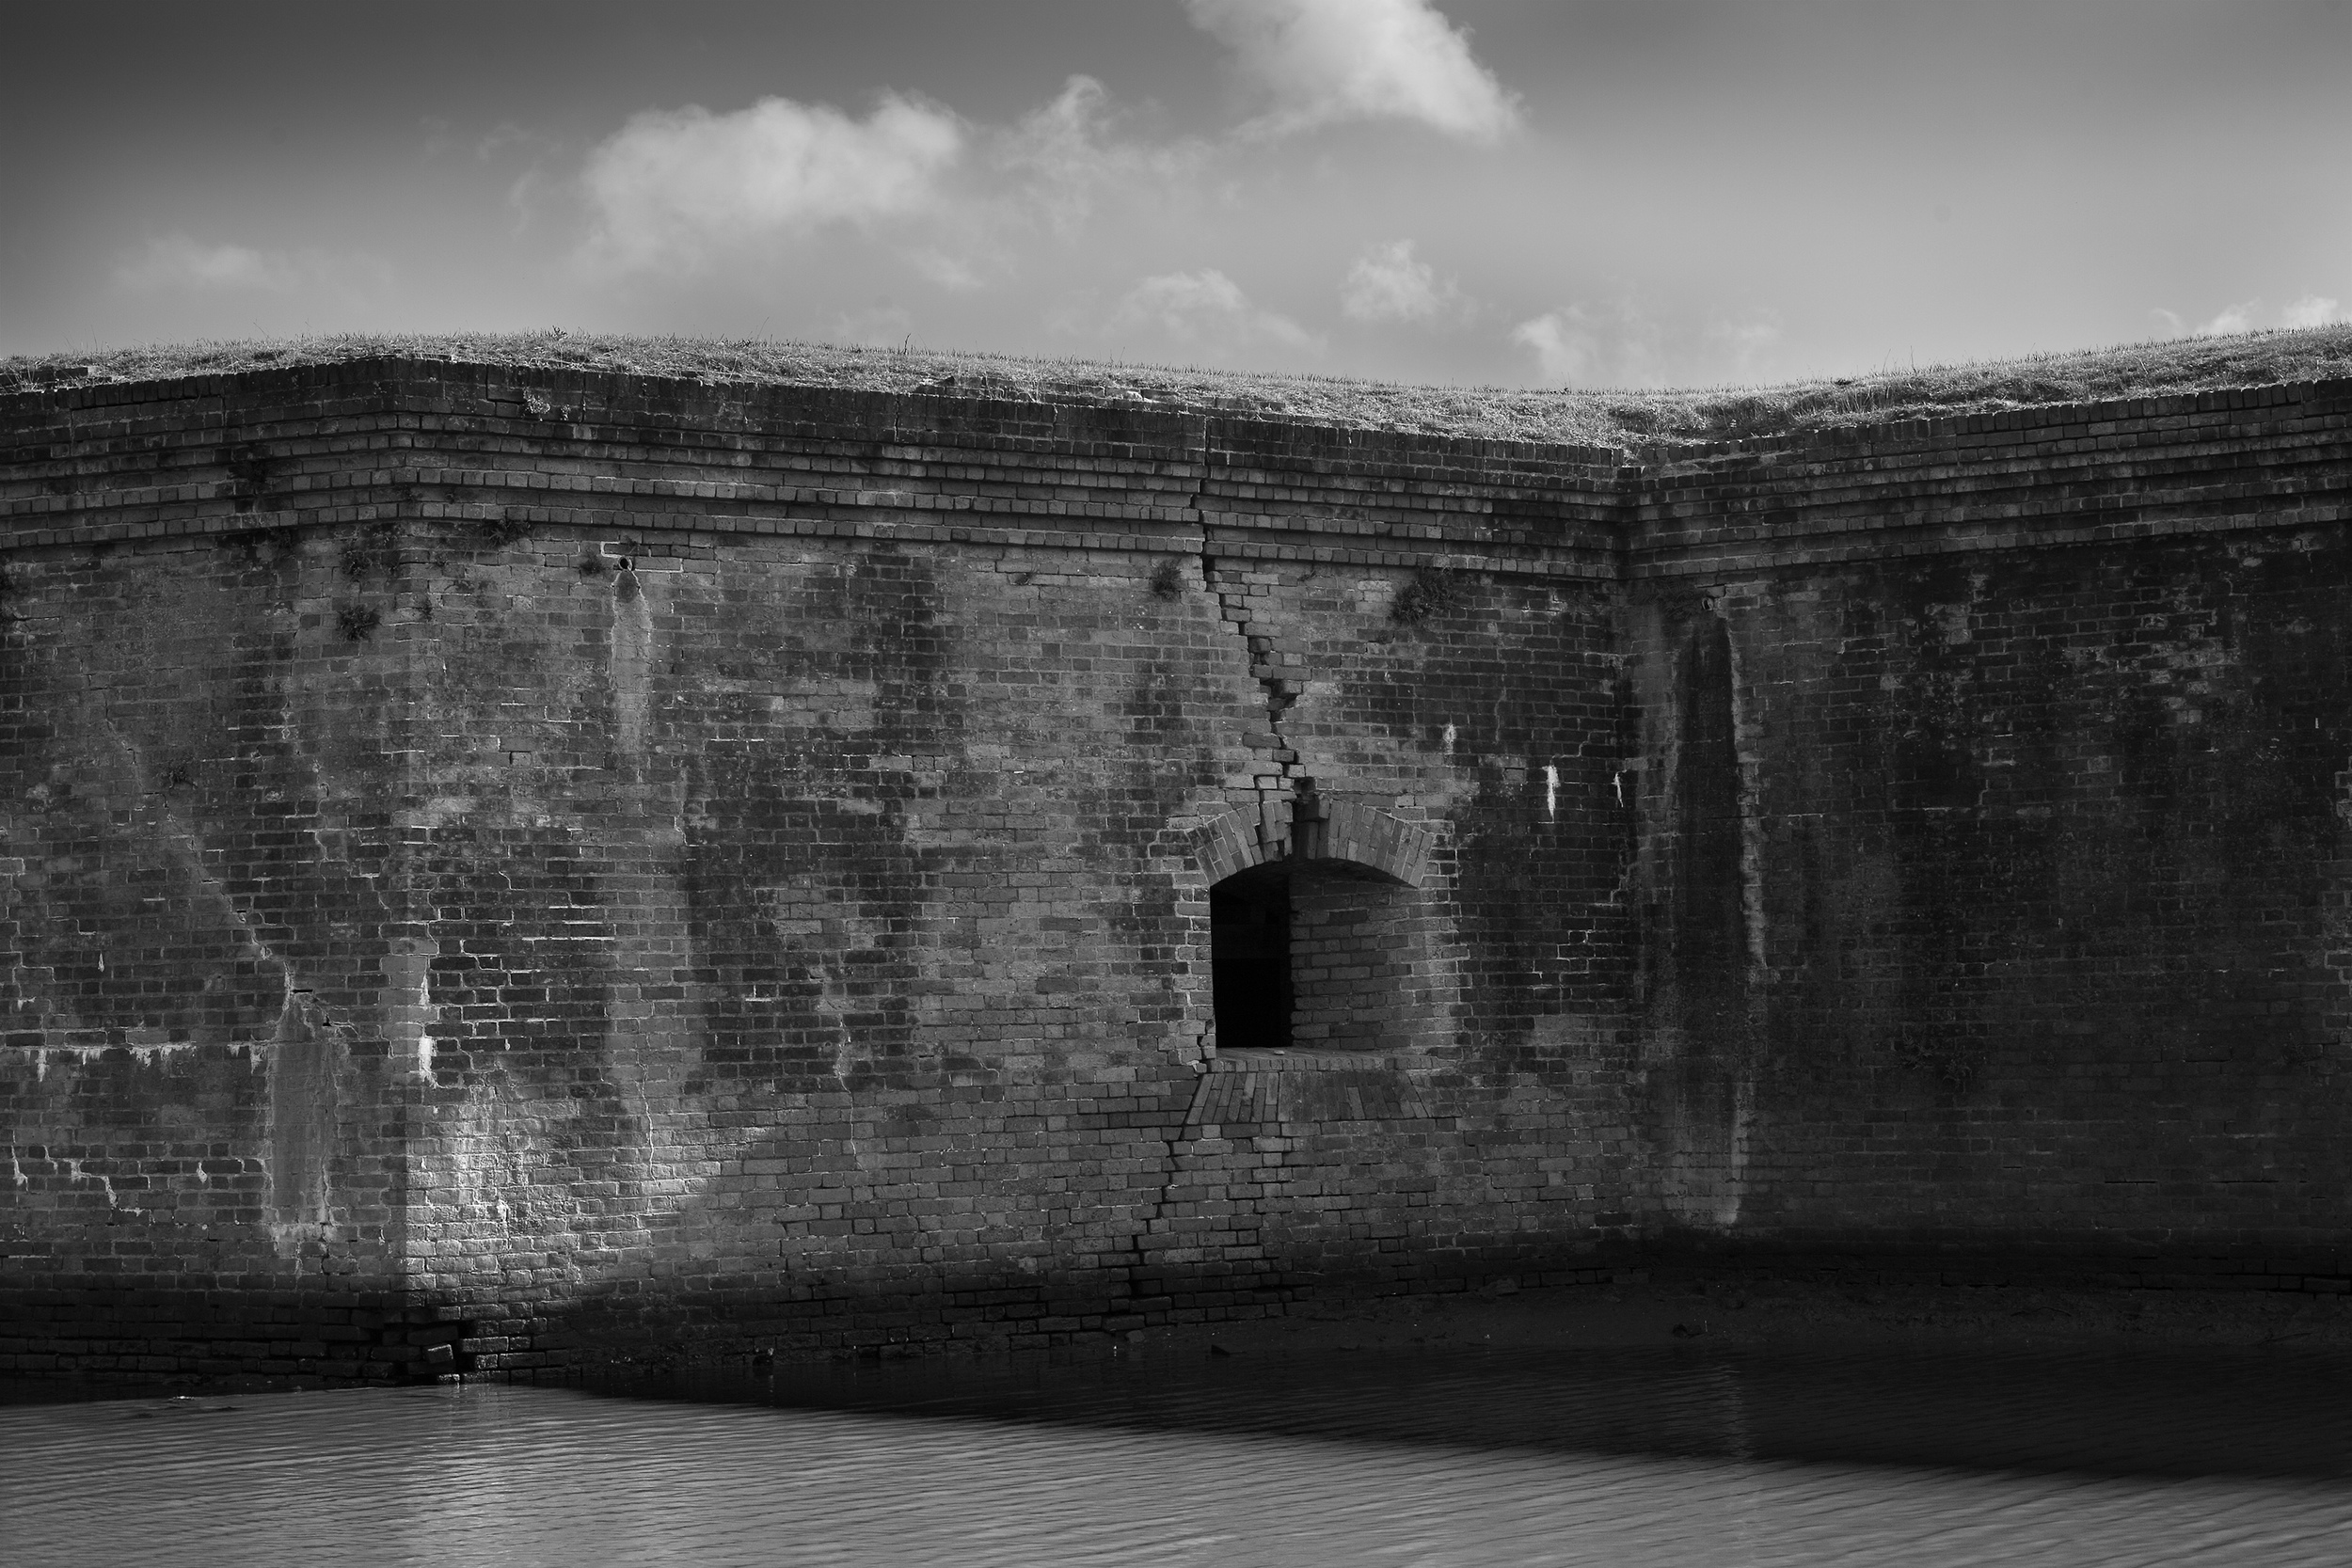 louisiana-coastal-fort-05.jpg